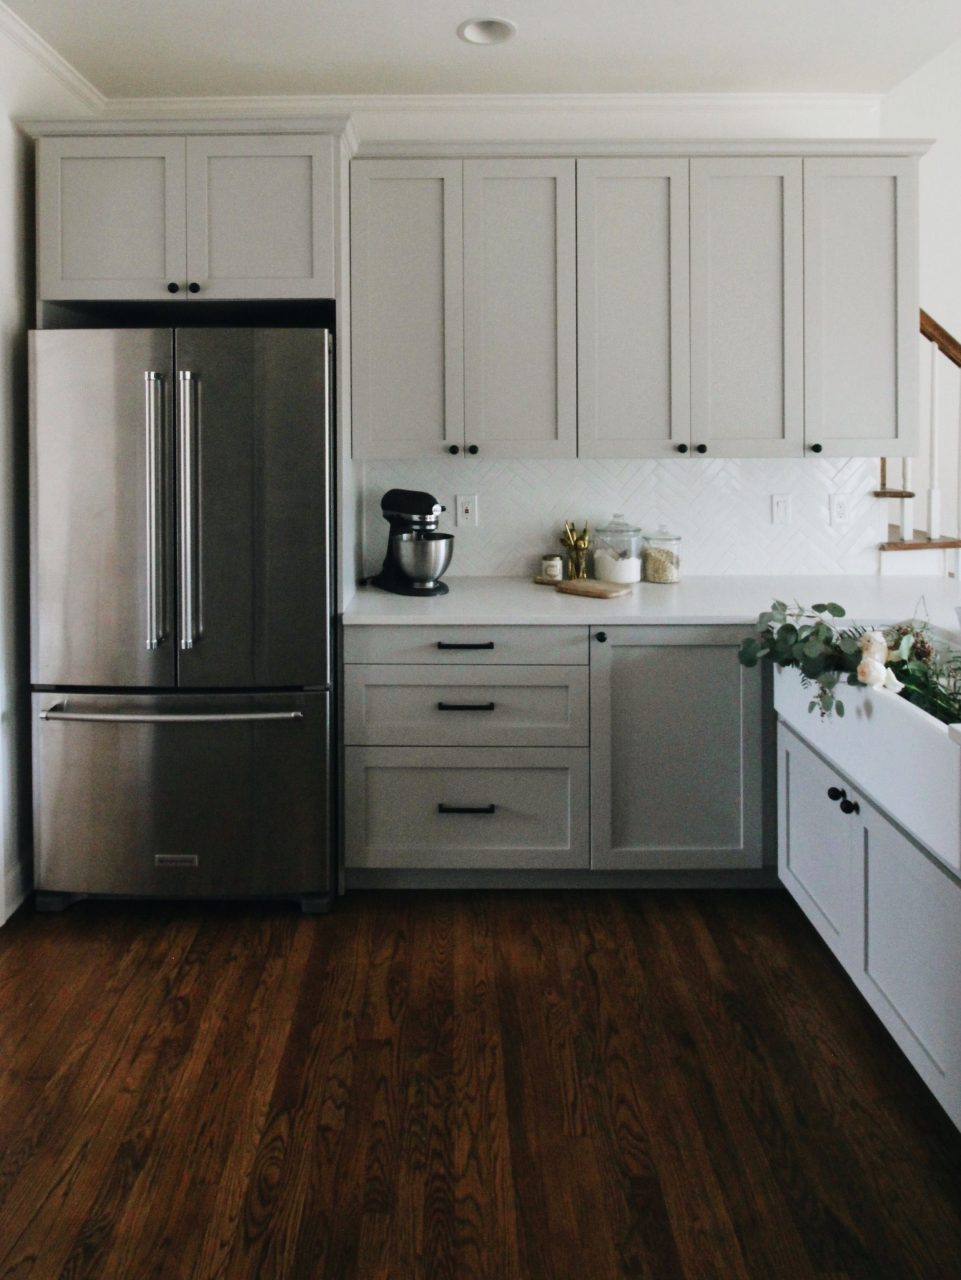 Our Kitchen Tour Feels Like Home Minimalist Kitchen Cabinets